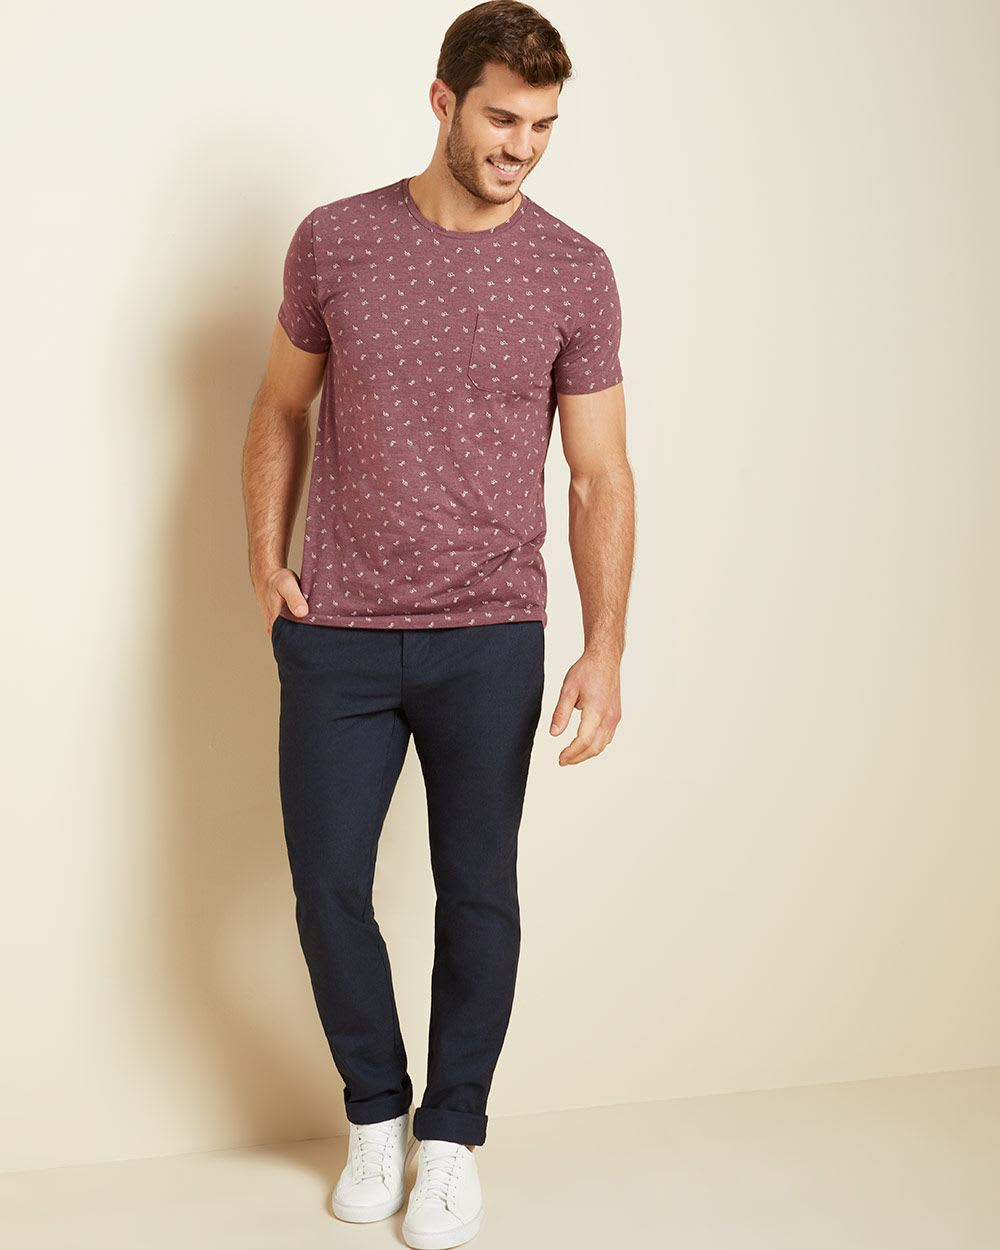 Printed Crew-neck t-shirt with pocket